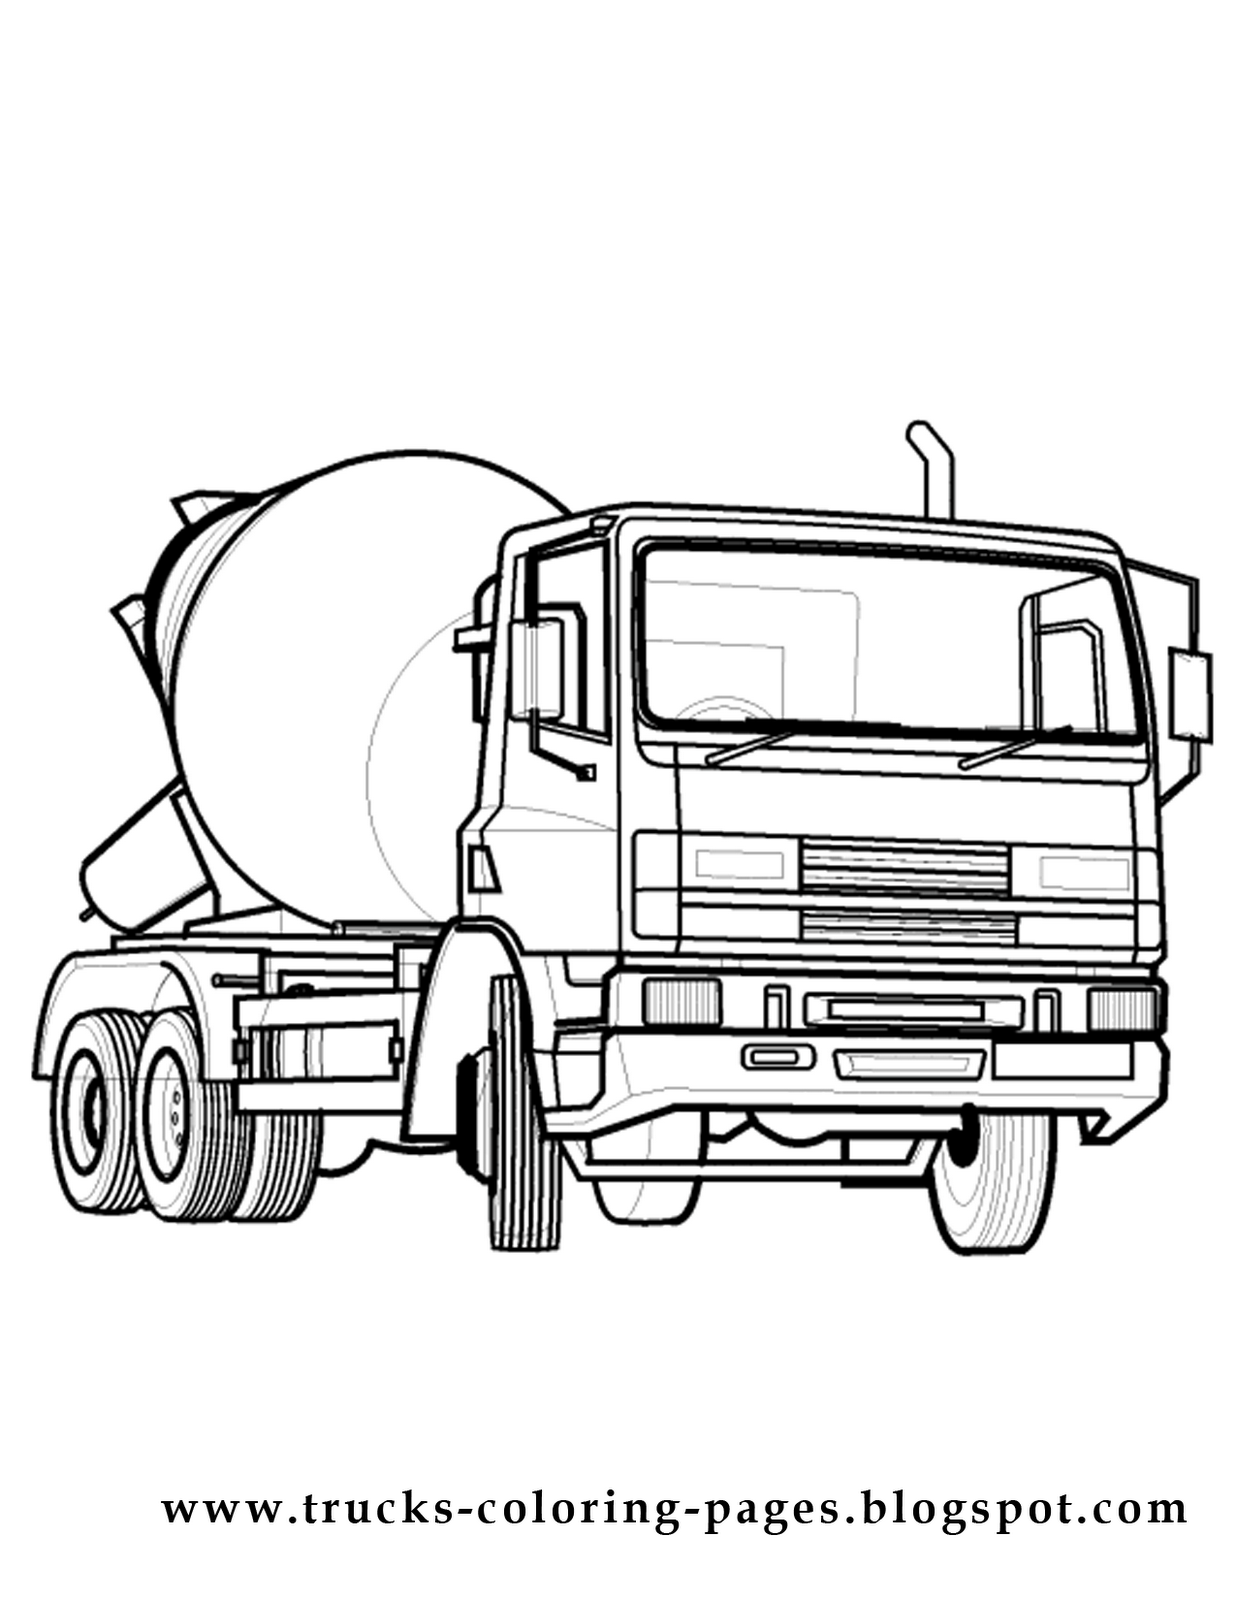 car and truck coloring pages how about coloring a mack super liner truck a dedicated car and coloring pages truck